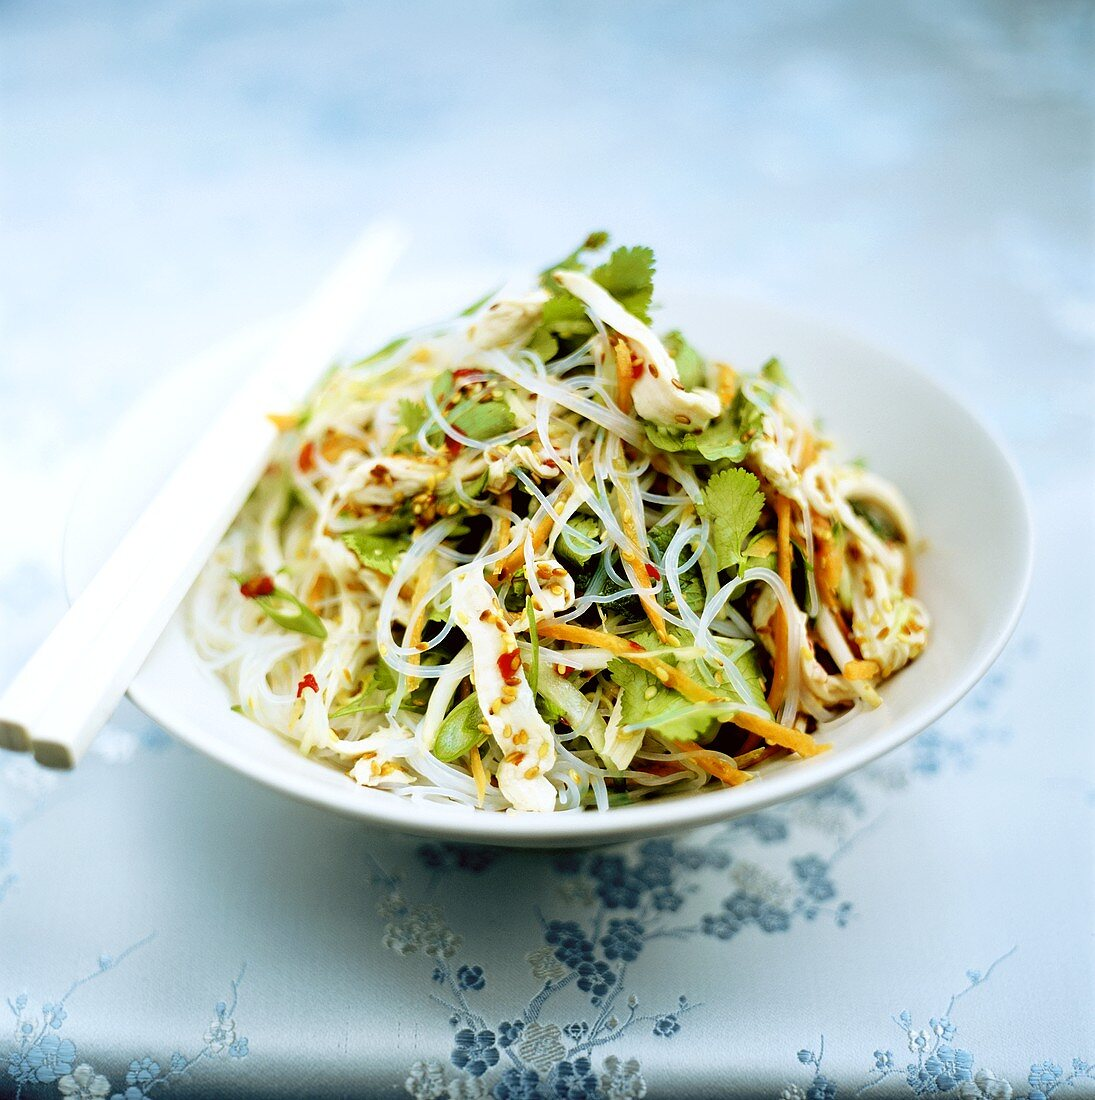 Spicy glass noodle salad with  chicken & coriander leaves